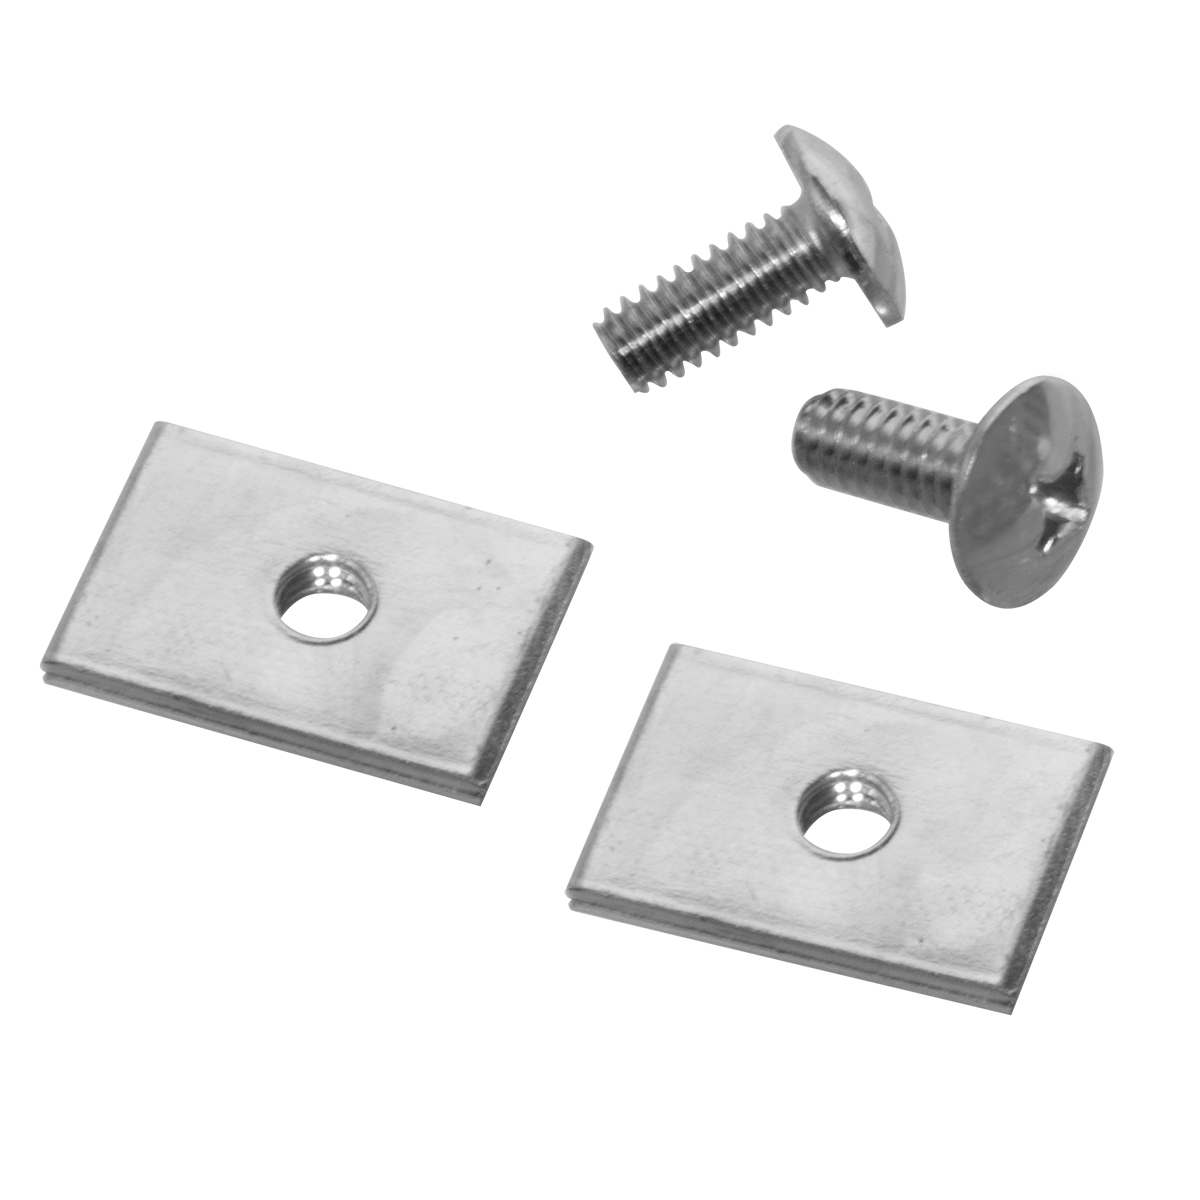 TiltView Hardware Pack, 1 Set, Chrome (TVHDWR).  This item sold in carton quantities of 1.